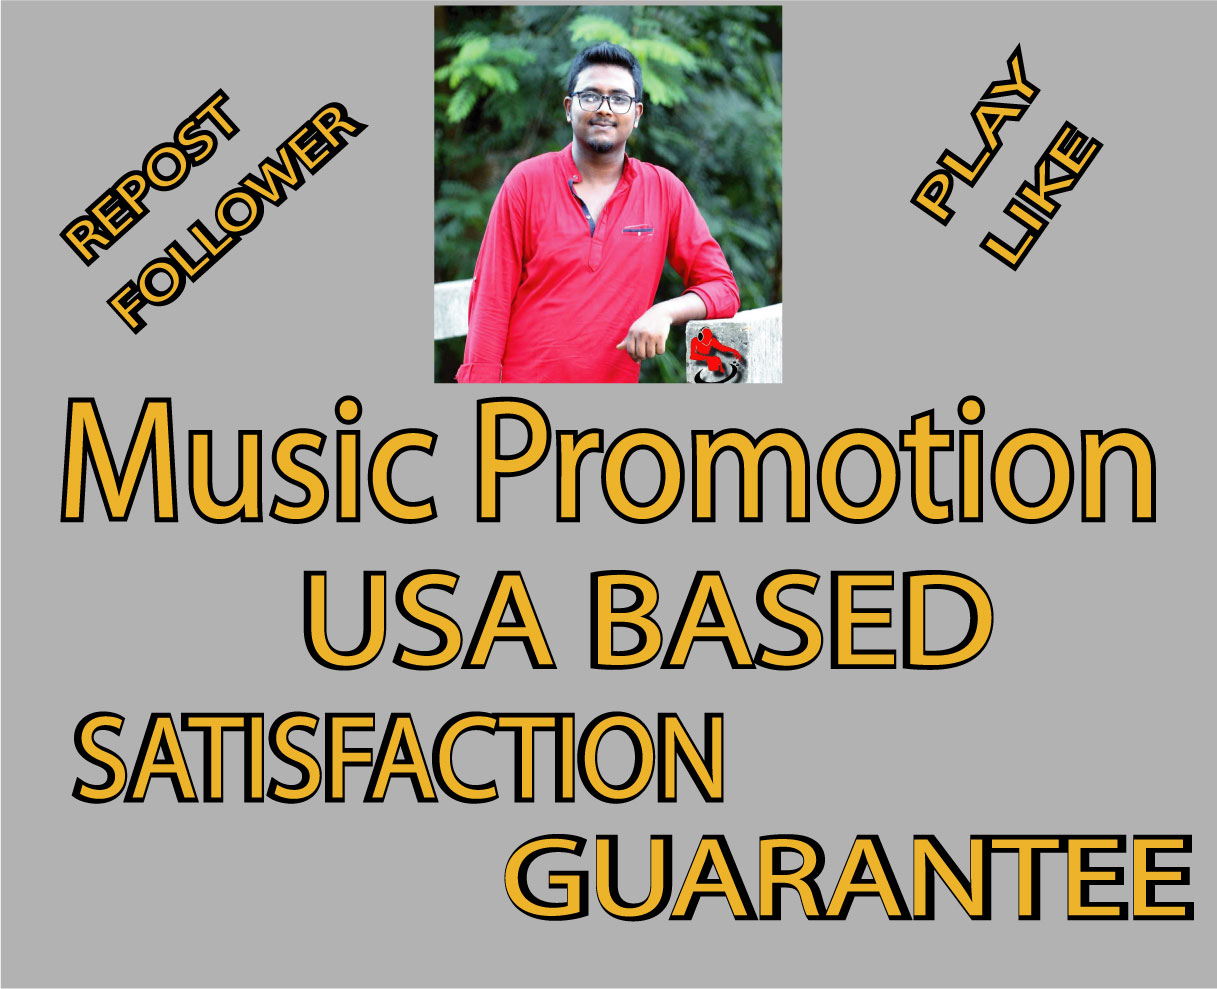 Buy 500K HQ Music Play With 100 Like and 100 Re-post & 20 Comments